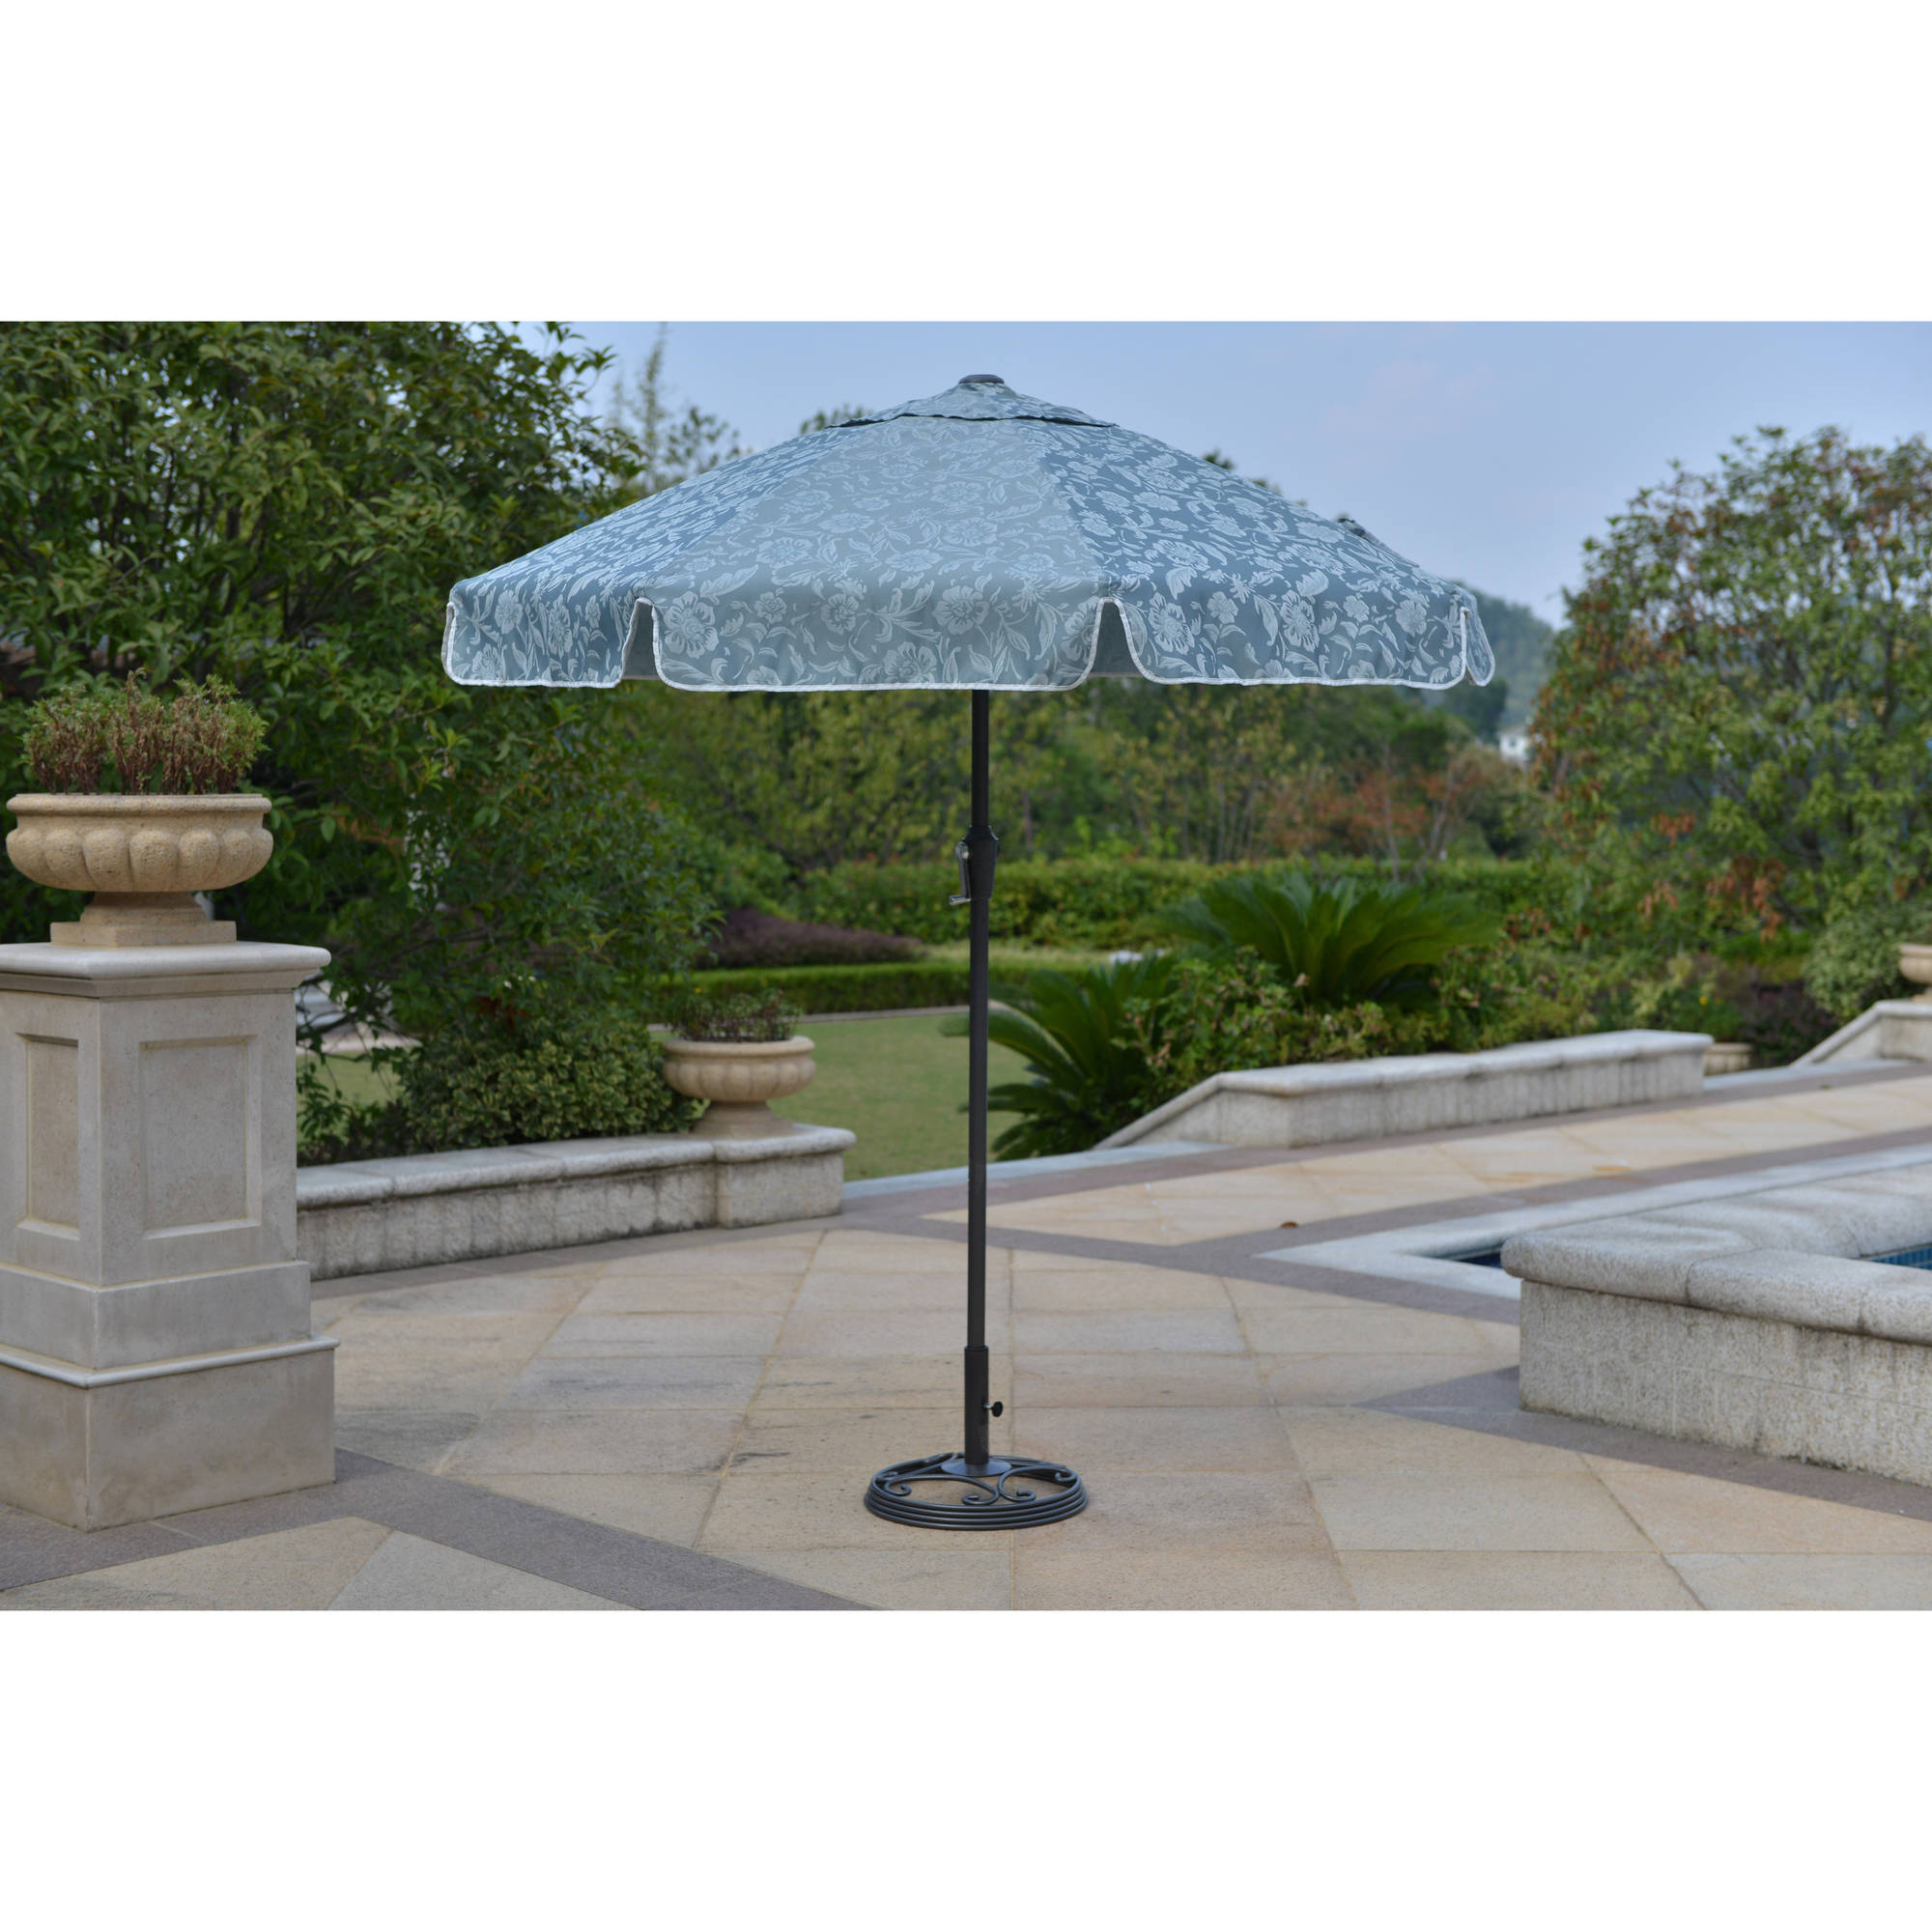 New willow springs 7 feet garden umbrella blue patio for Lawn chair with umbrella